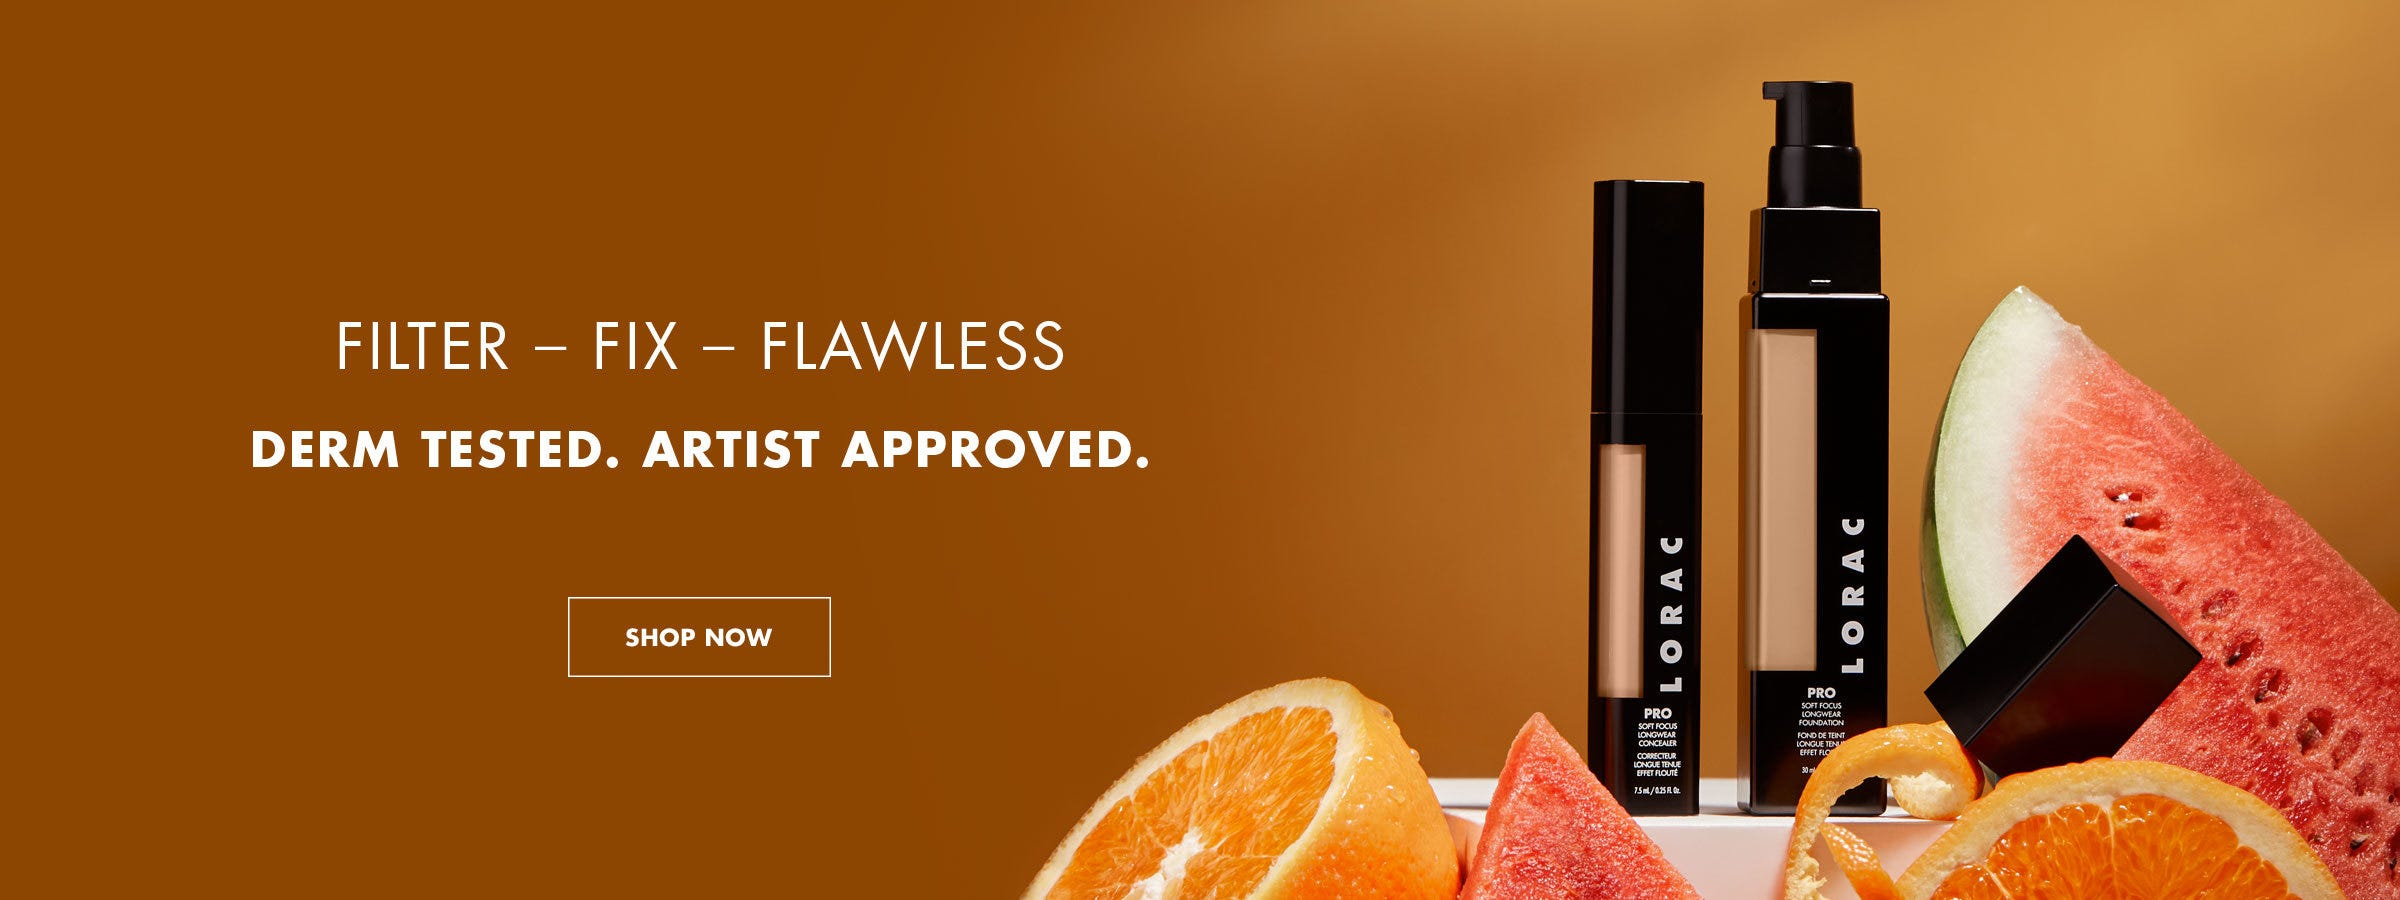 Filter - Fix - Flawless Derm Tested. Artist Approved. | SHOP NOW